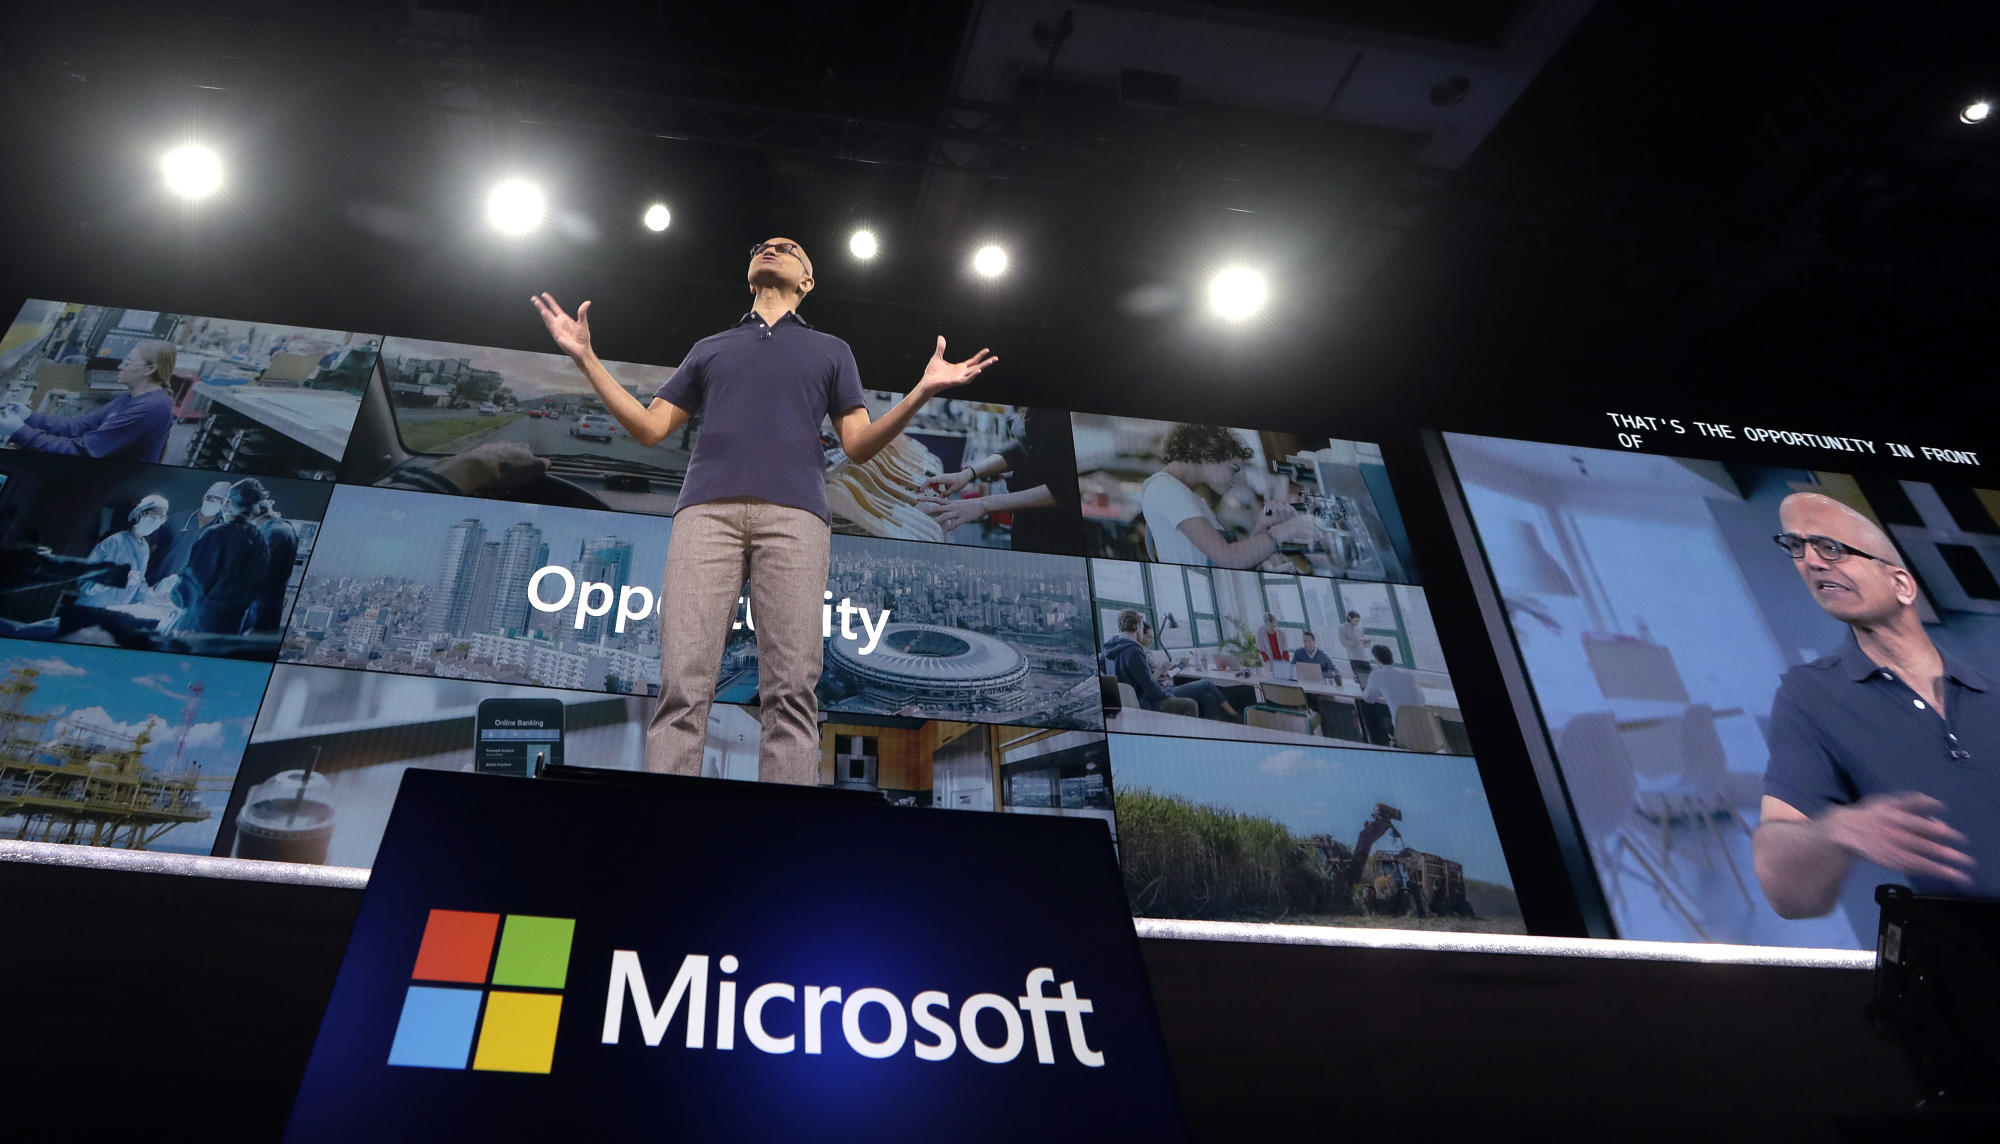 Microsoft's $19.7B Nuance deal shows it's going after the 'golden ticket' of health care